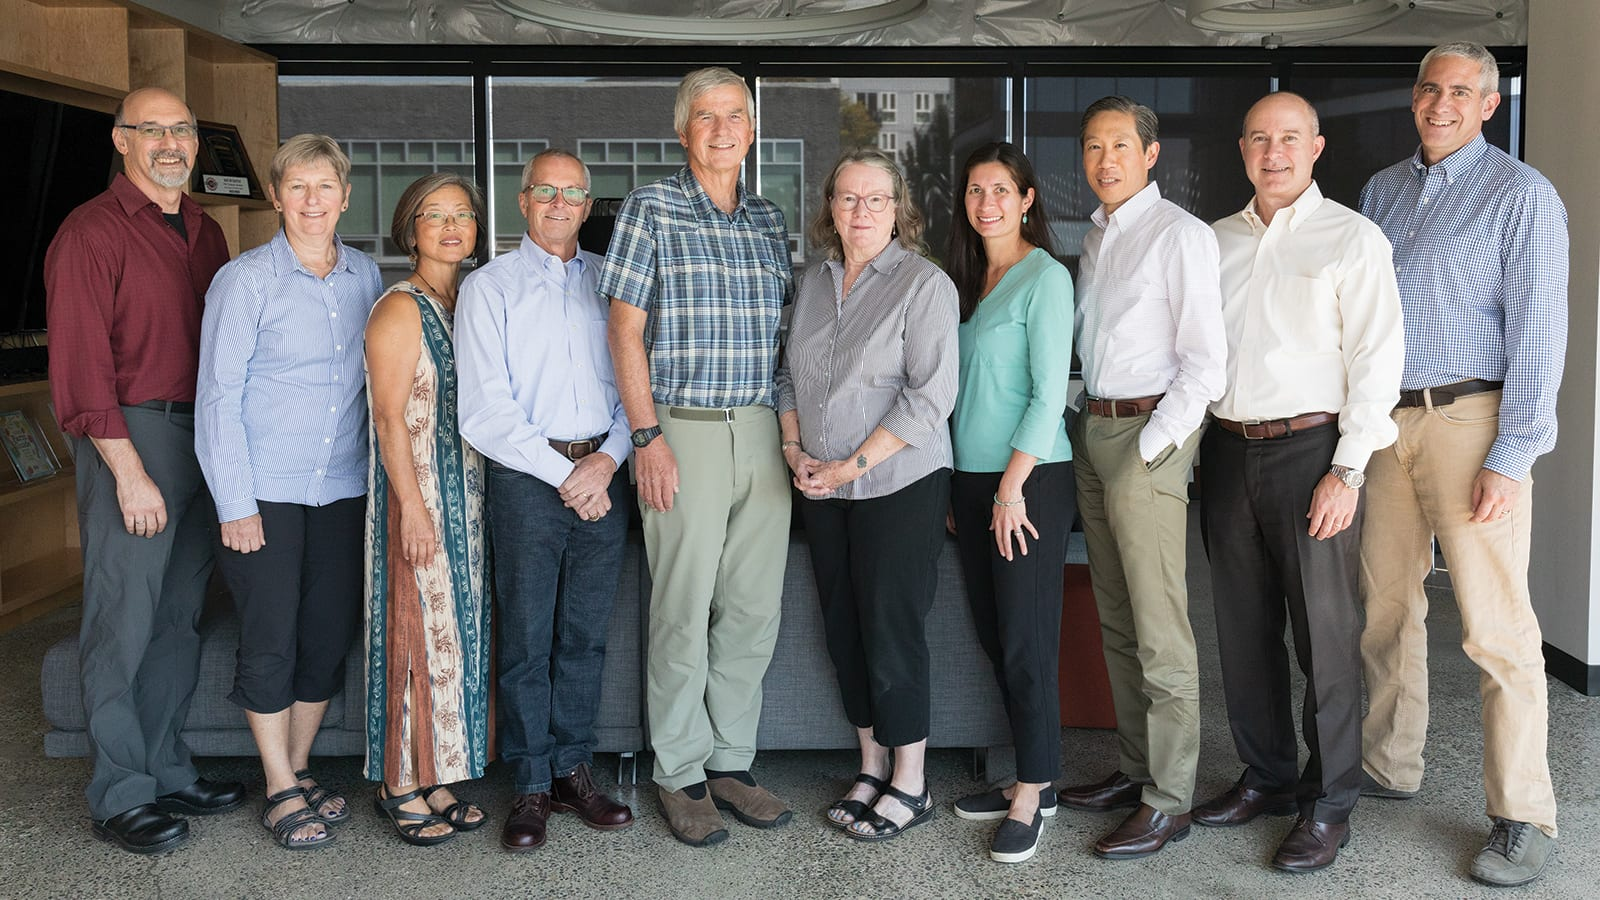 2018 PCC Board of Trustees (pictured left to right); Sandy Voit, Catherine Walker, Alice Cho Snyder, Brad Brown, Bruce Williams, Elin Smith, Tania DePue, Stephen Tan, Michael Hutchings, Ben Klasky.